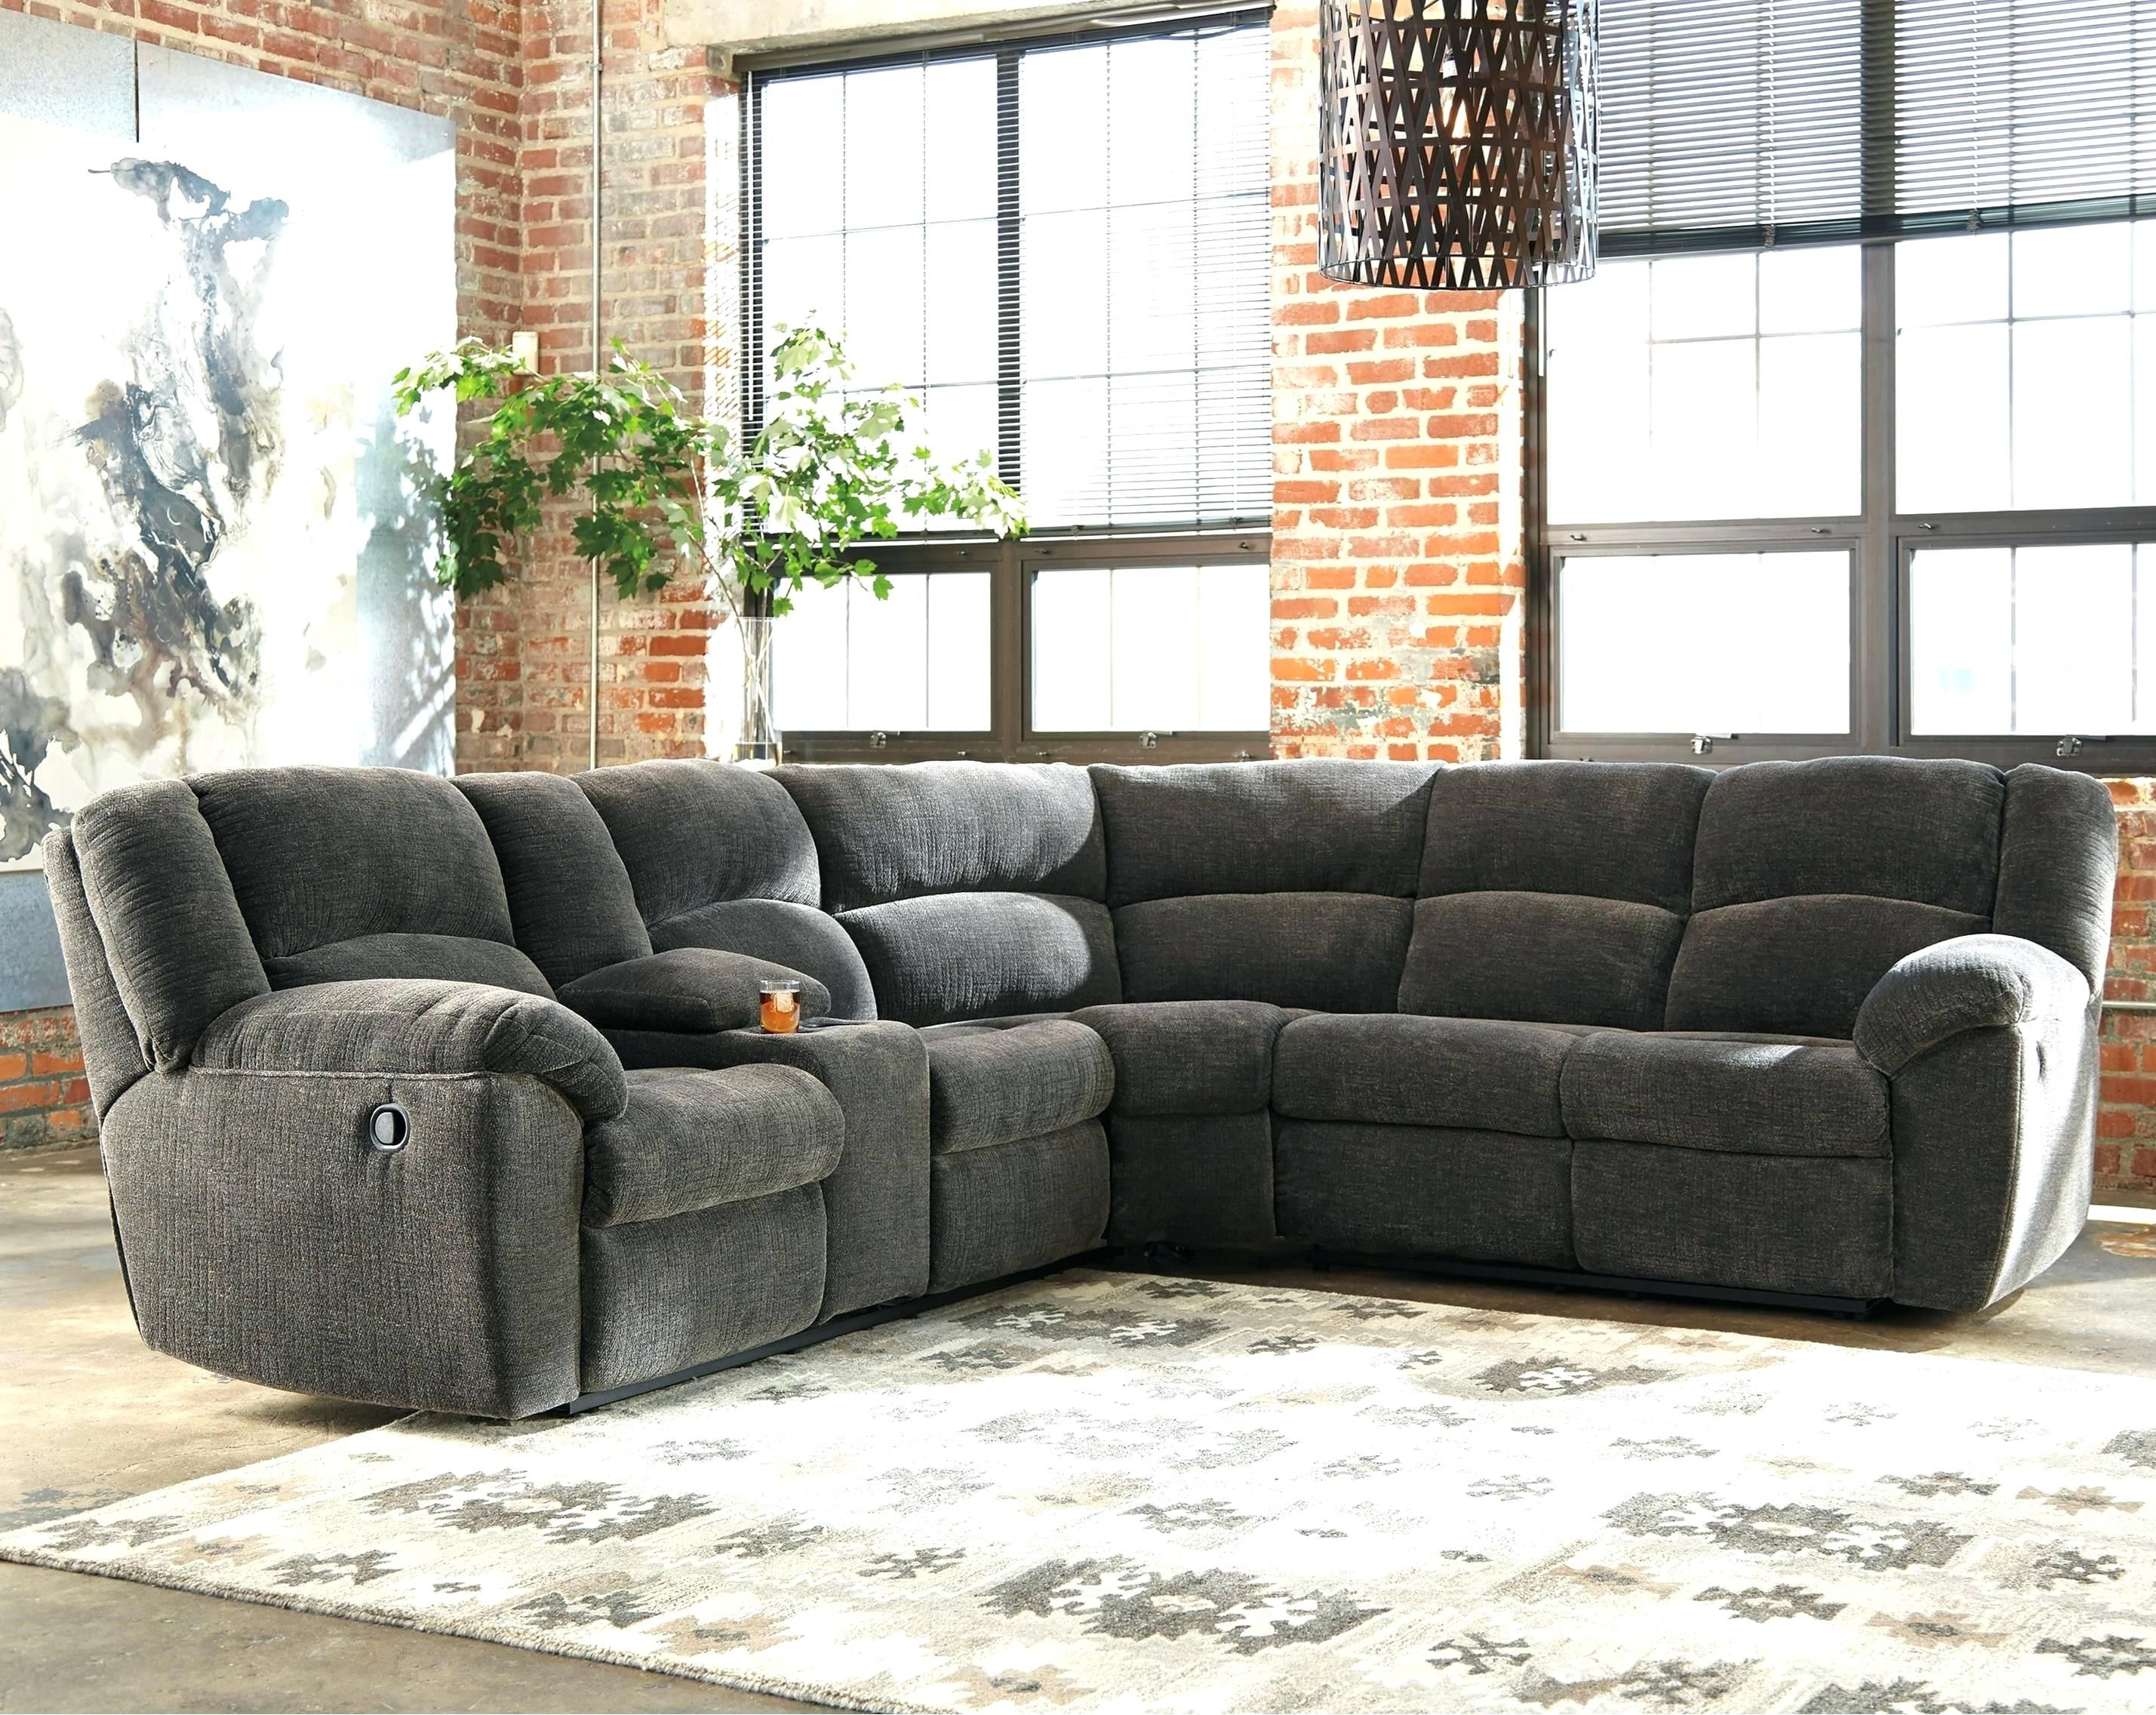 Reclining Sectional Sofa With Chaise Lounge 572 By Franklin Sofas Under 1000